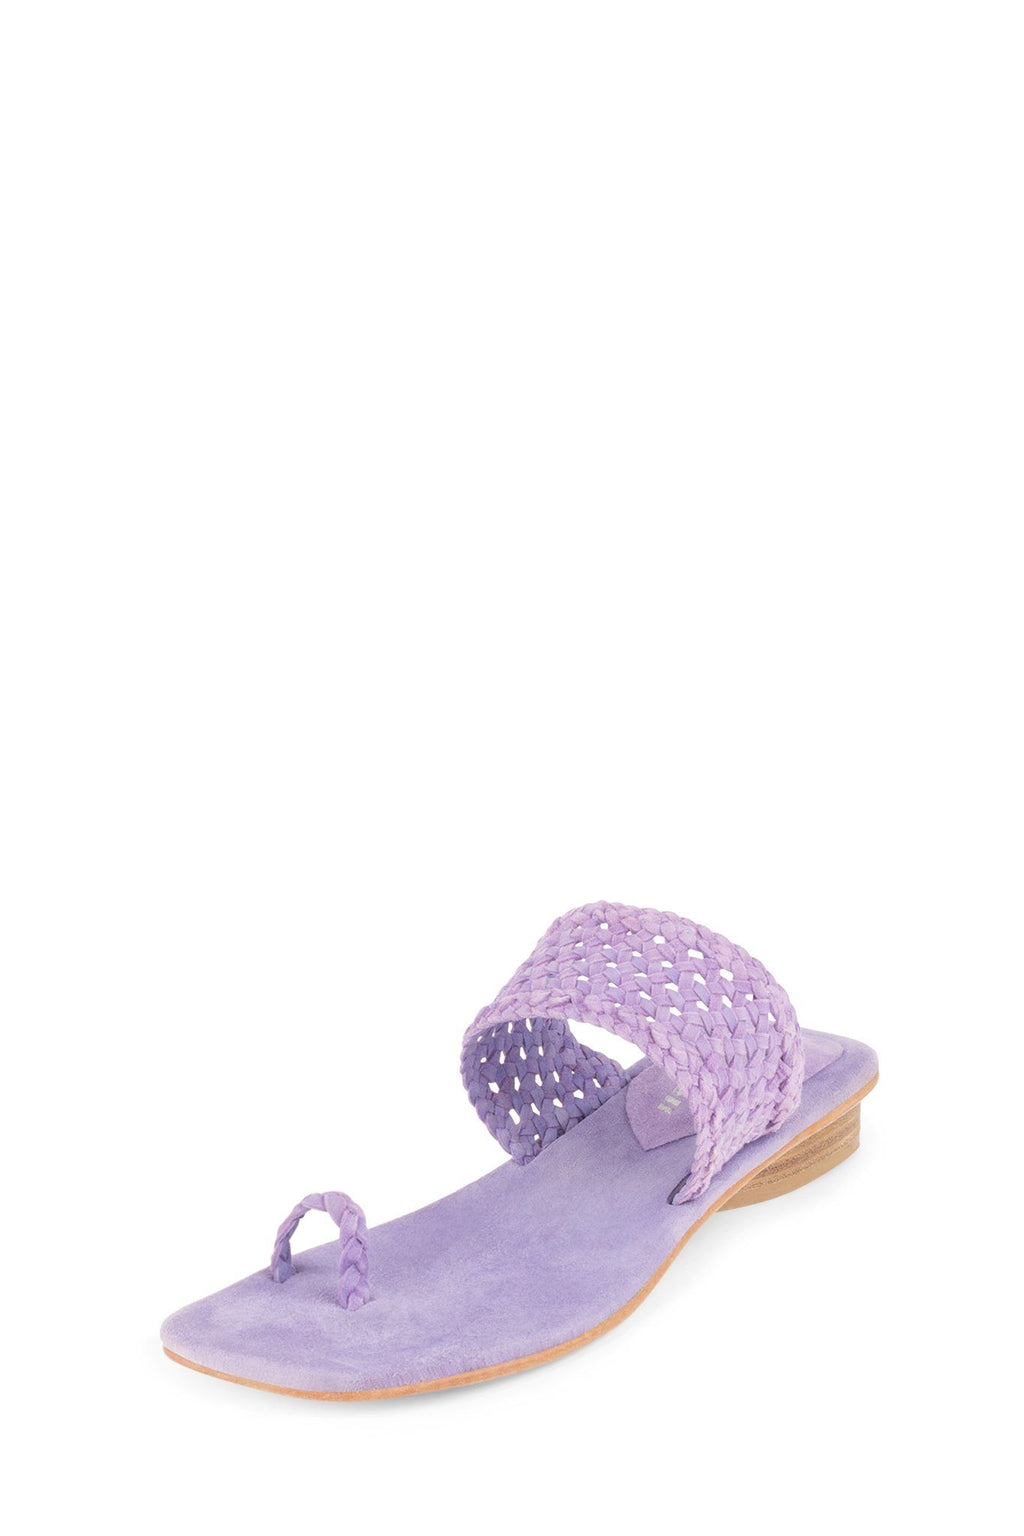 ALTHEA Flat Sandal Jeffrey Campbell